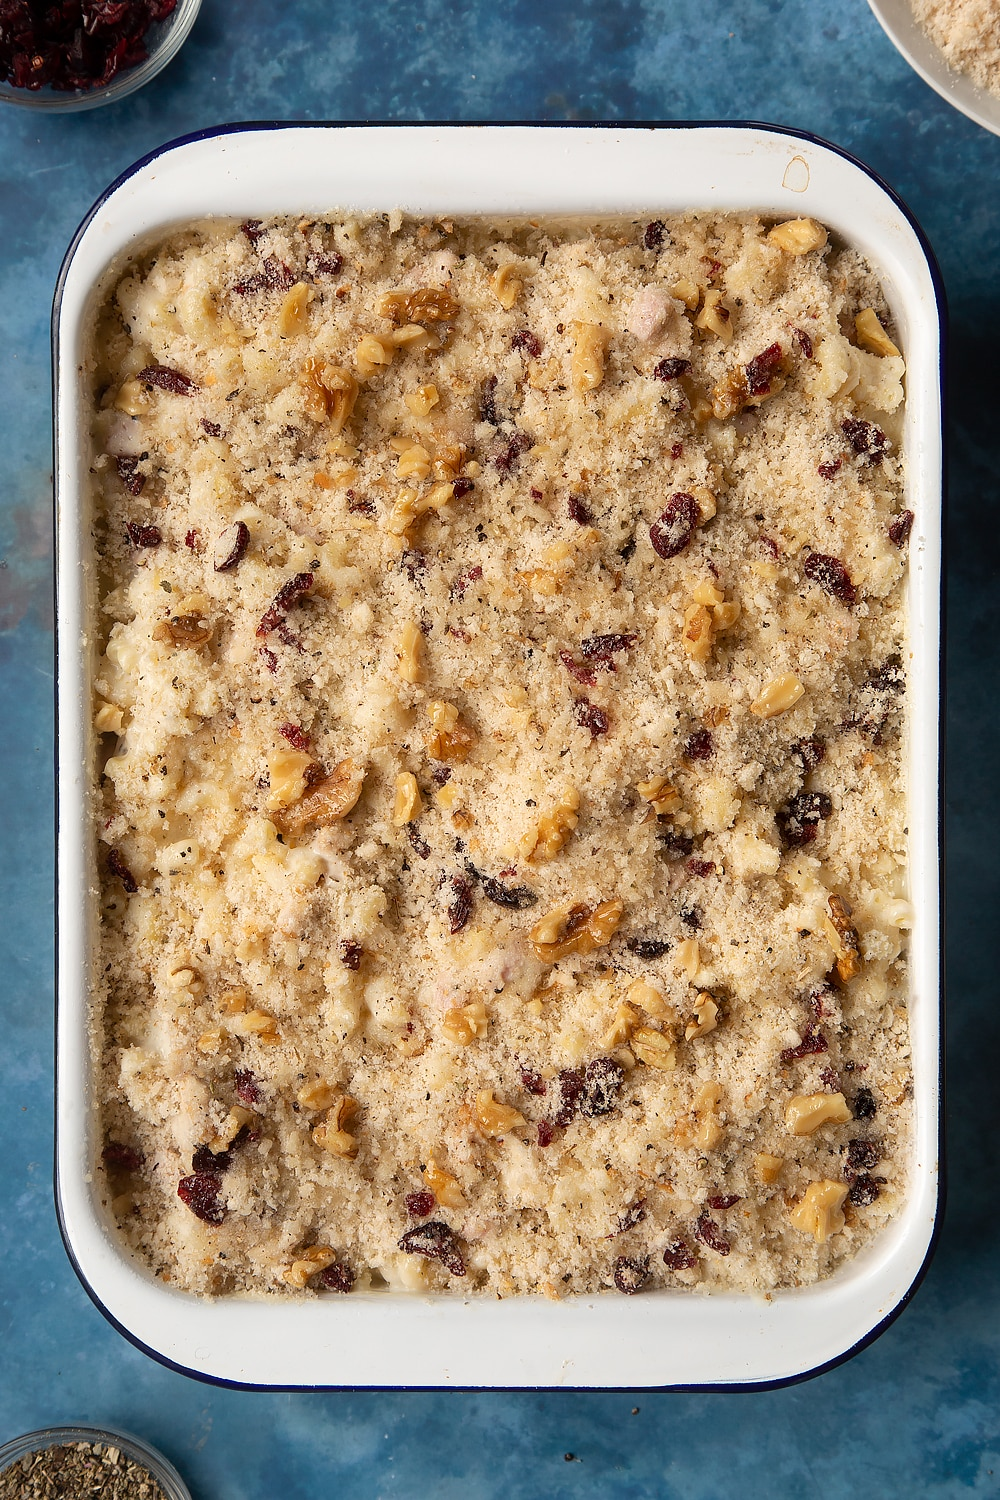 A large roasting pan filled with chicken and bacon mac and cheese, topped with a crumb made from breadcrumbs and drizzled with olive oil.